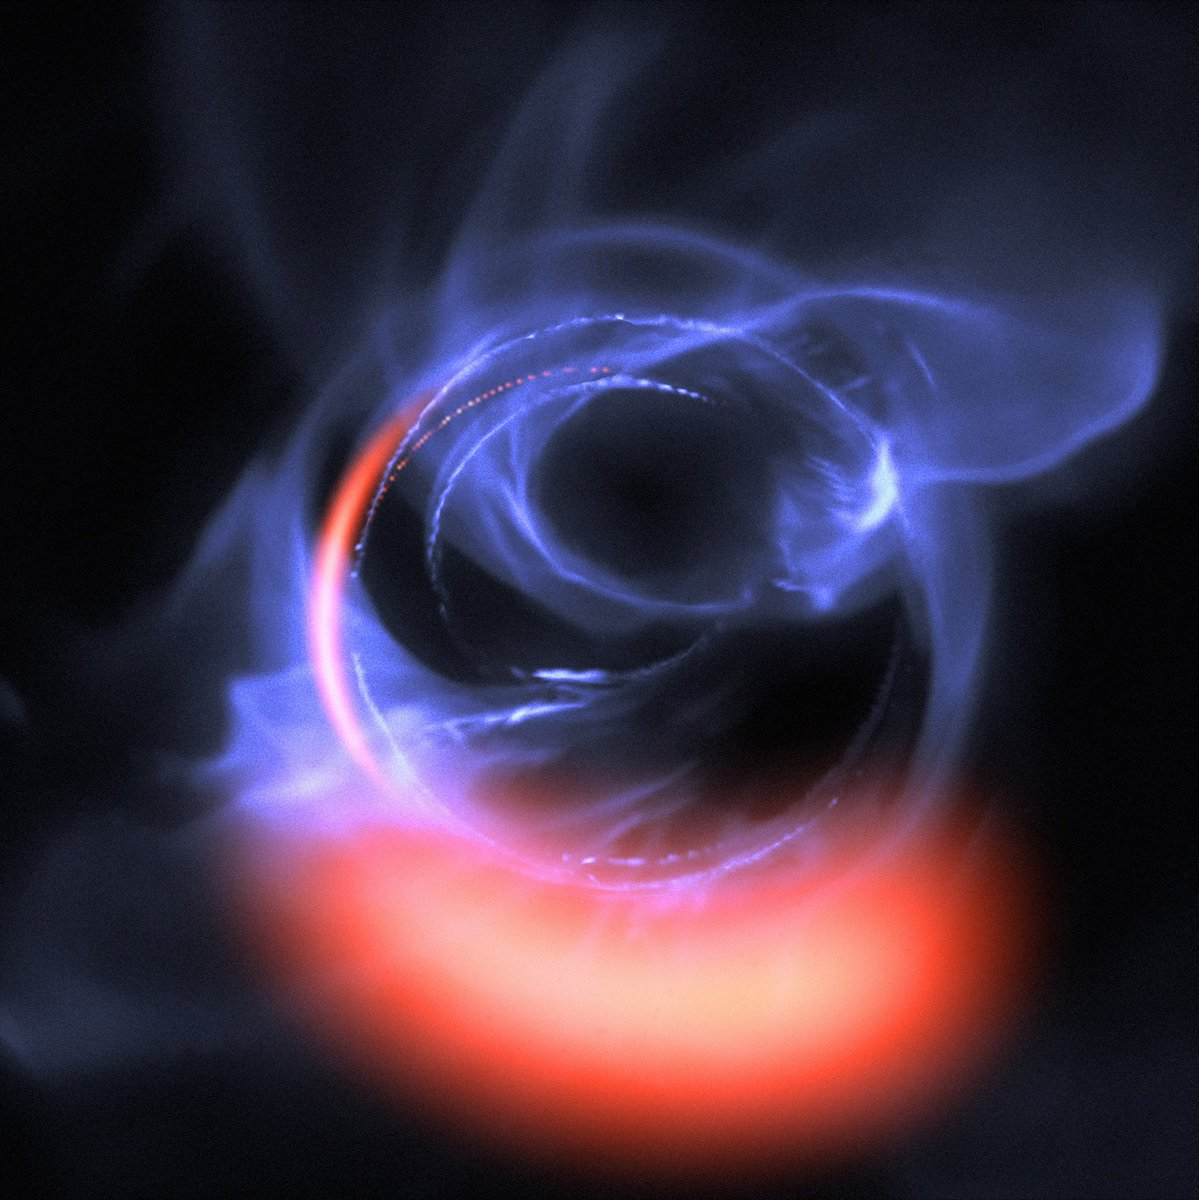 1/n This is quite seriously one of the most jaw-dropping observations I've ever written about:  Astronomers have detected material *just* over the edge of a black hole's Point Of No Return.    https://t.co/A2ytjya4Uc